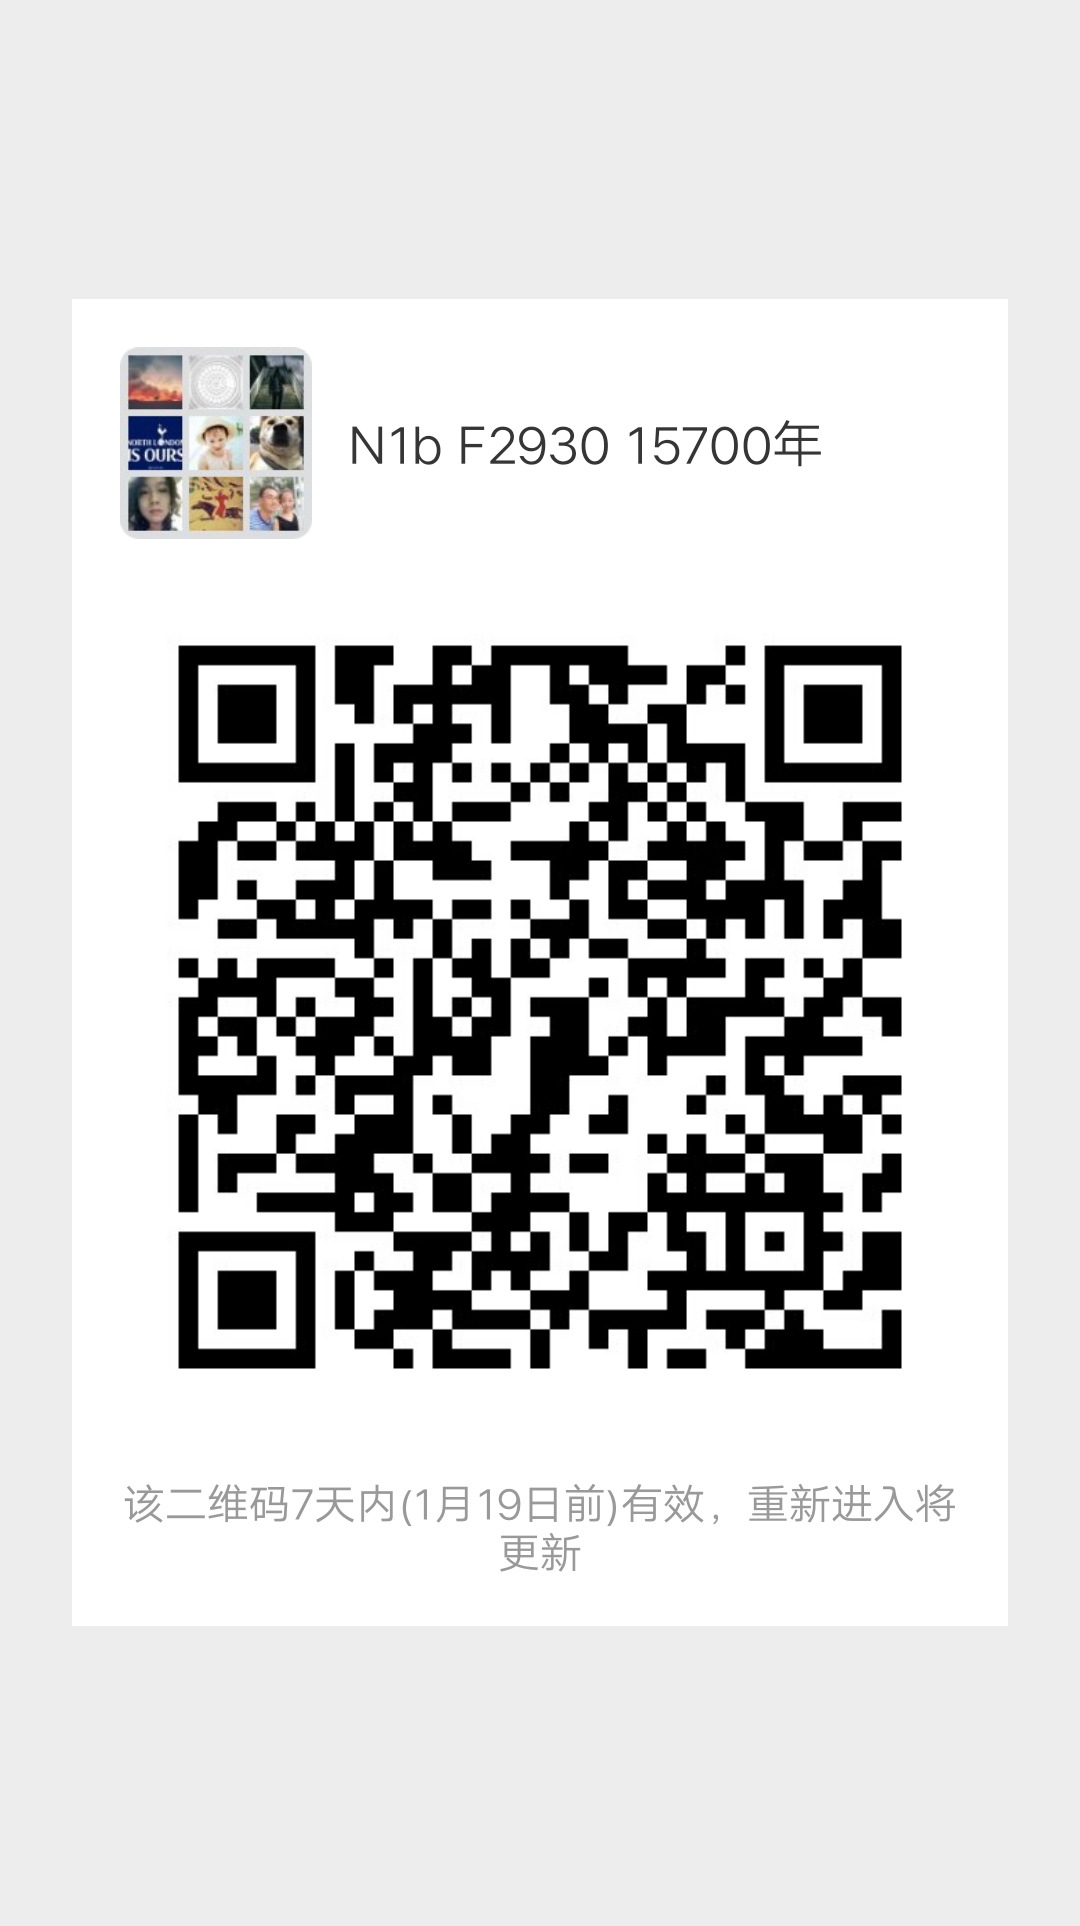 mmqrcode1547258137667.png